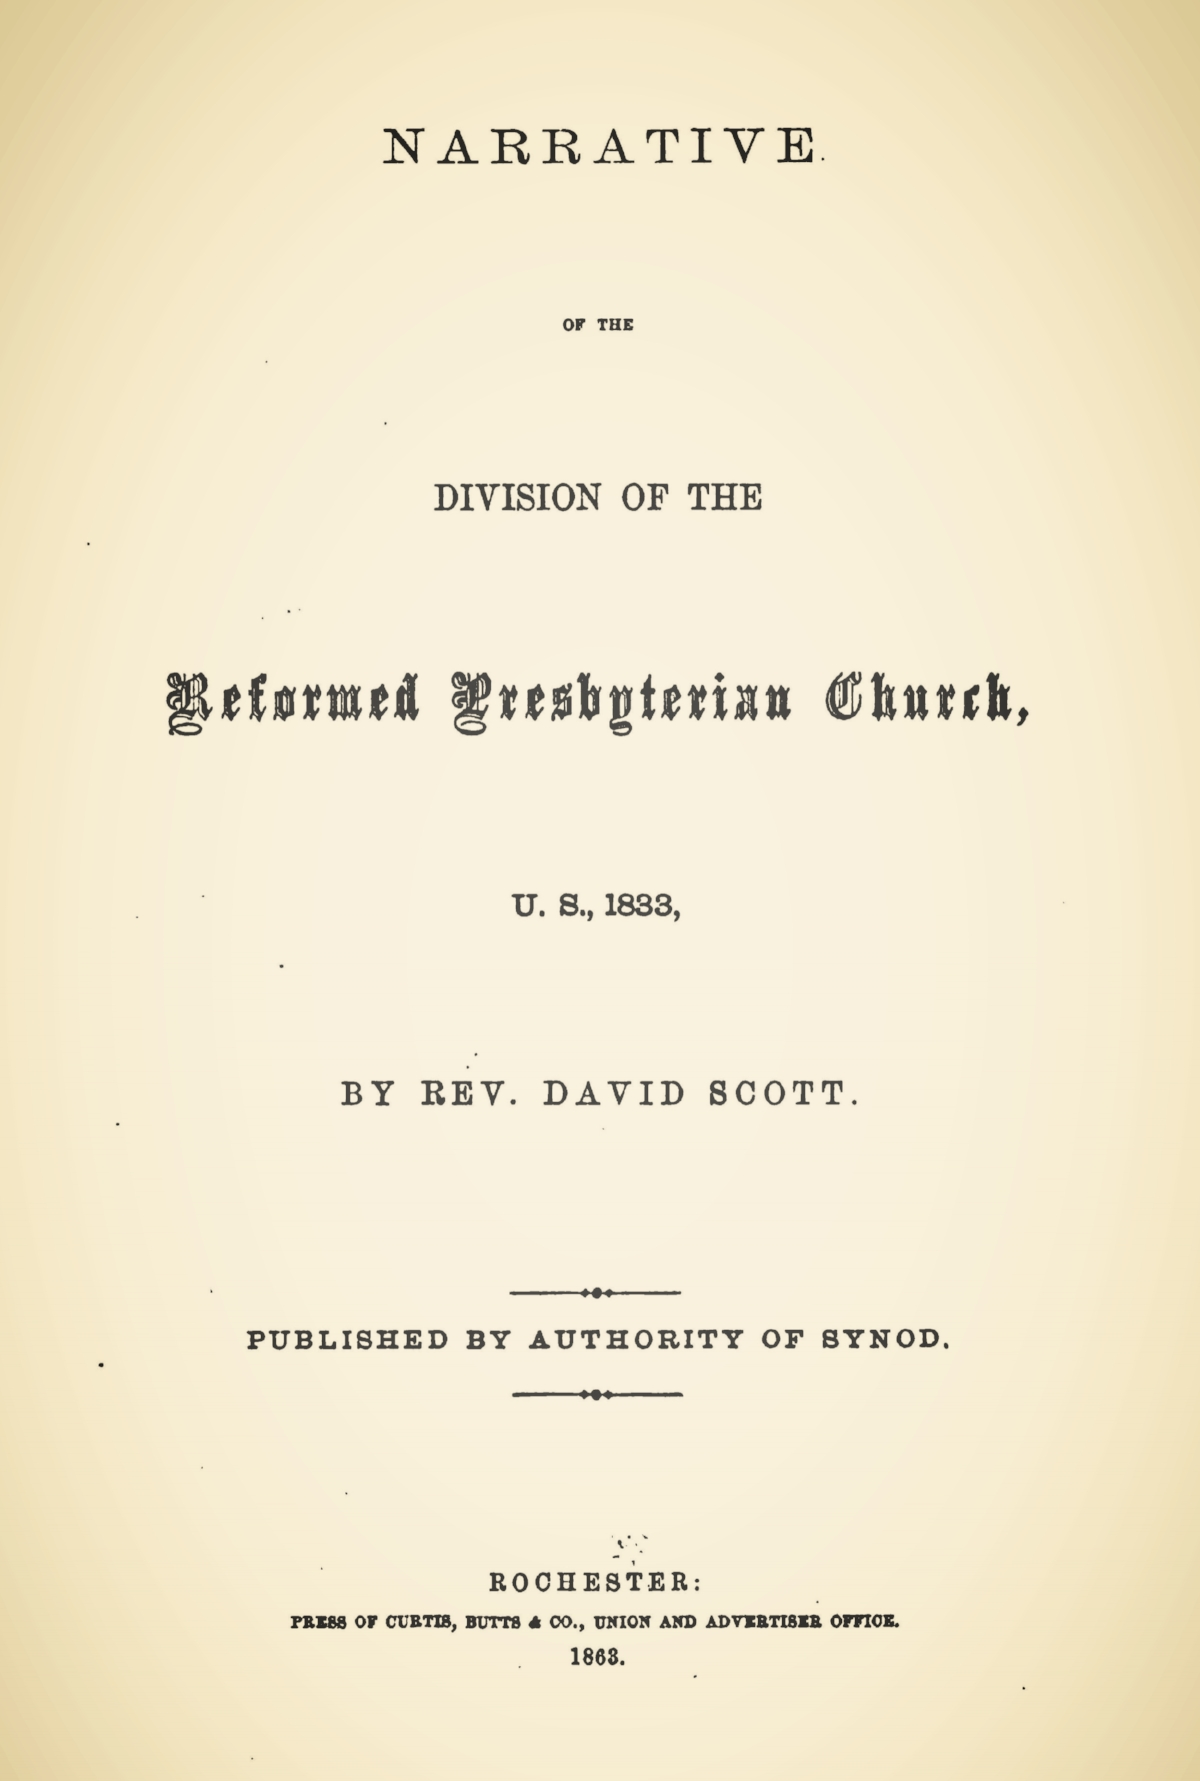 Scott, David, Narrative of the Division of the Reformed Presbyterian Church, U.S., 1833 Title Page.jpg